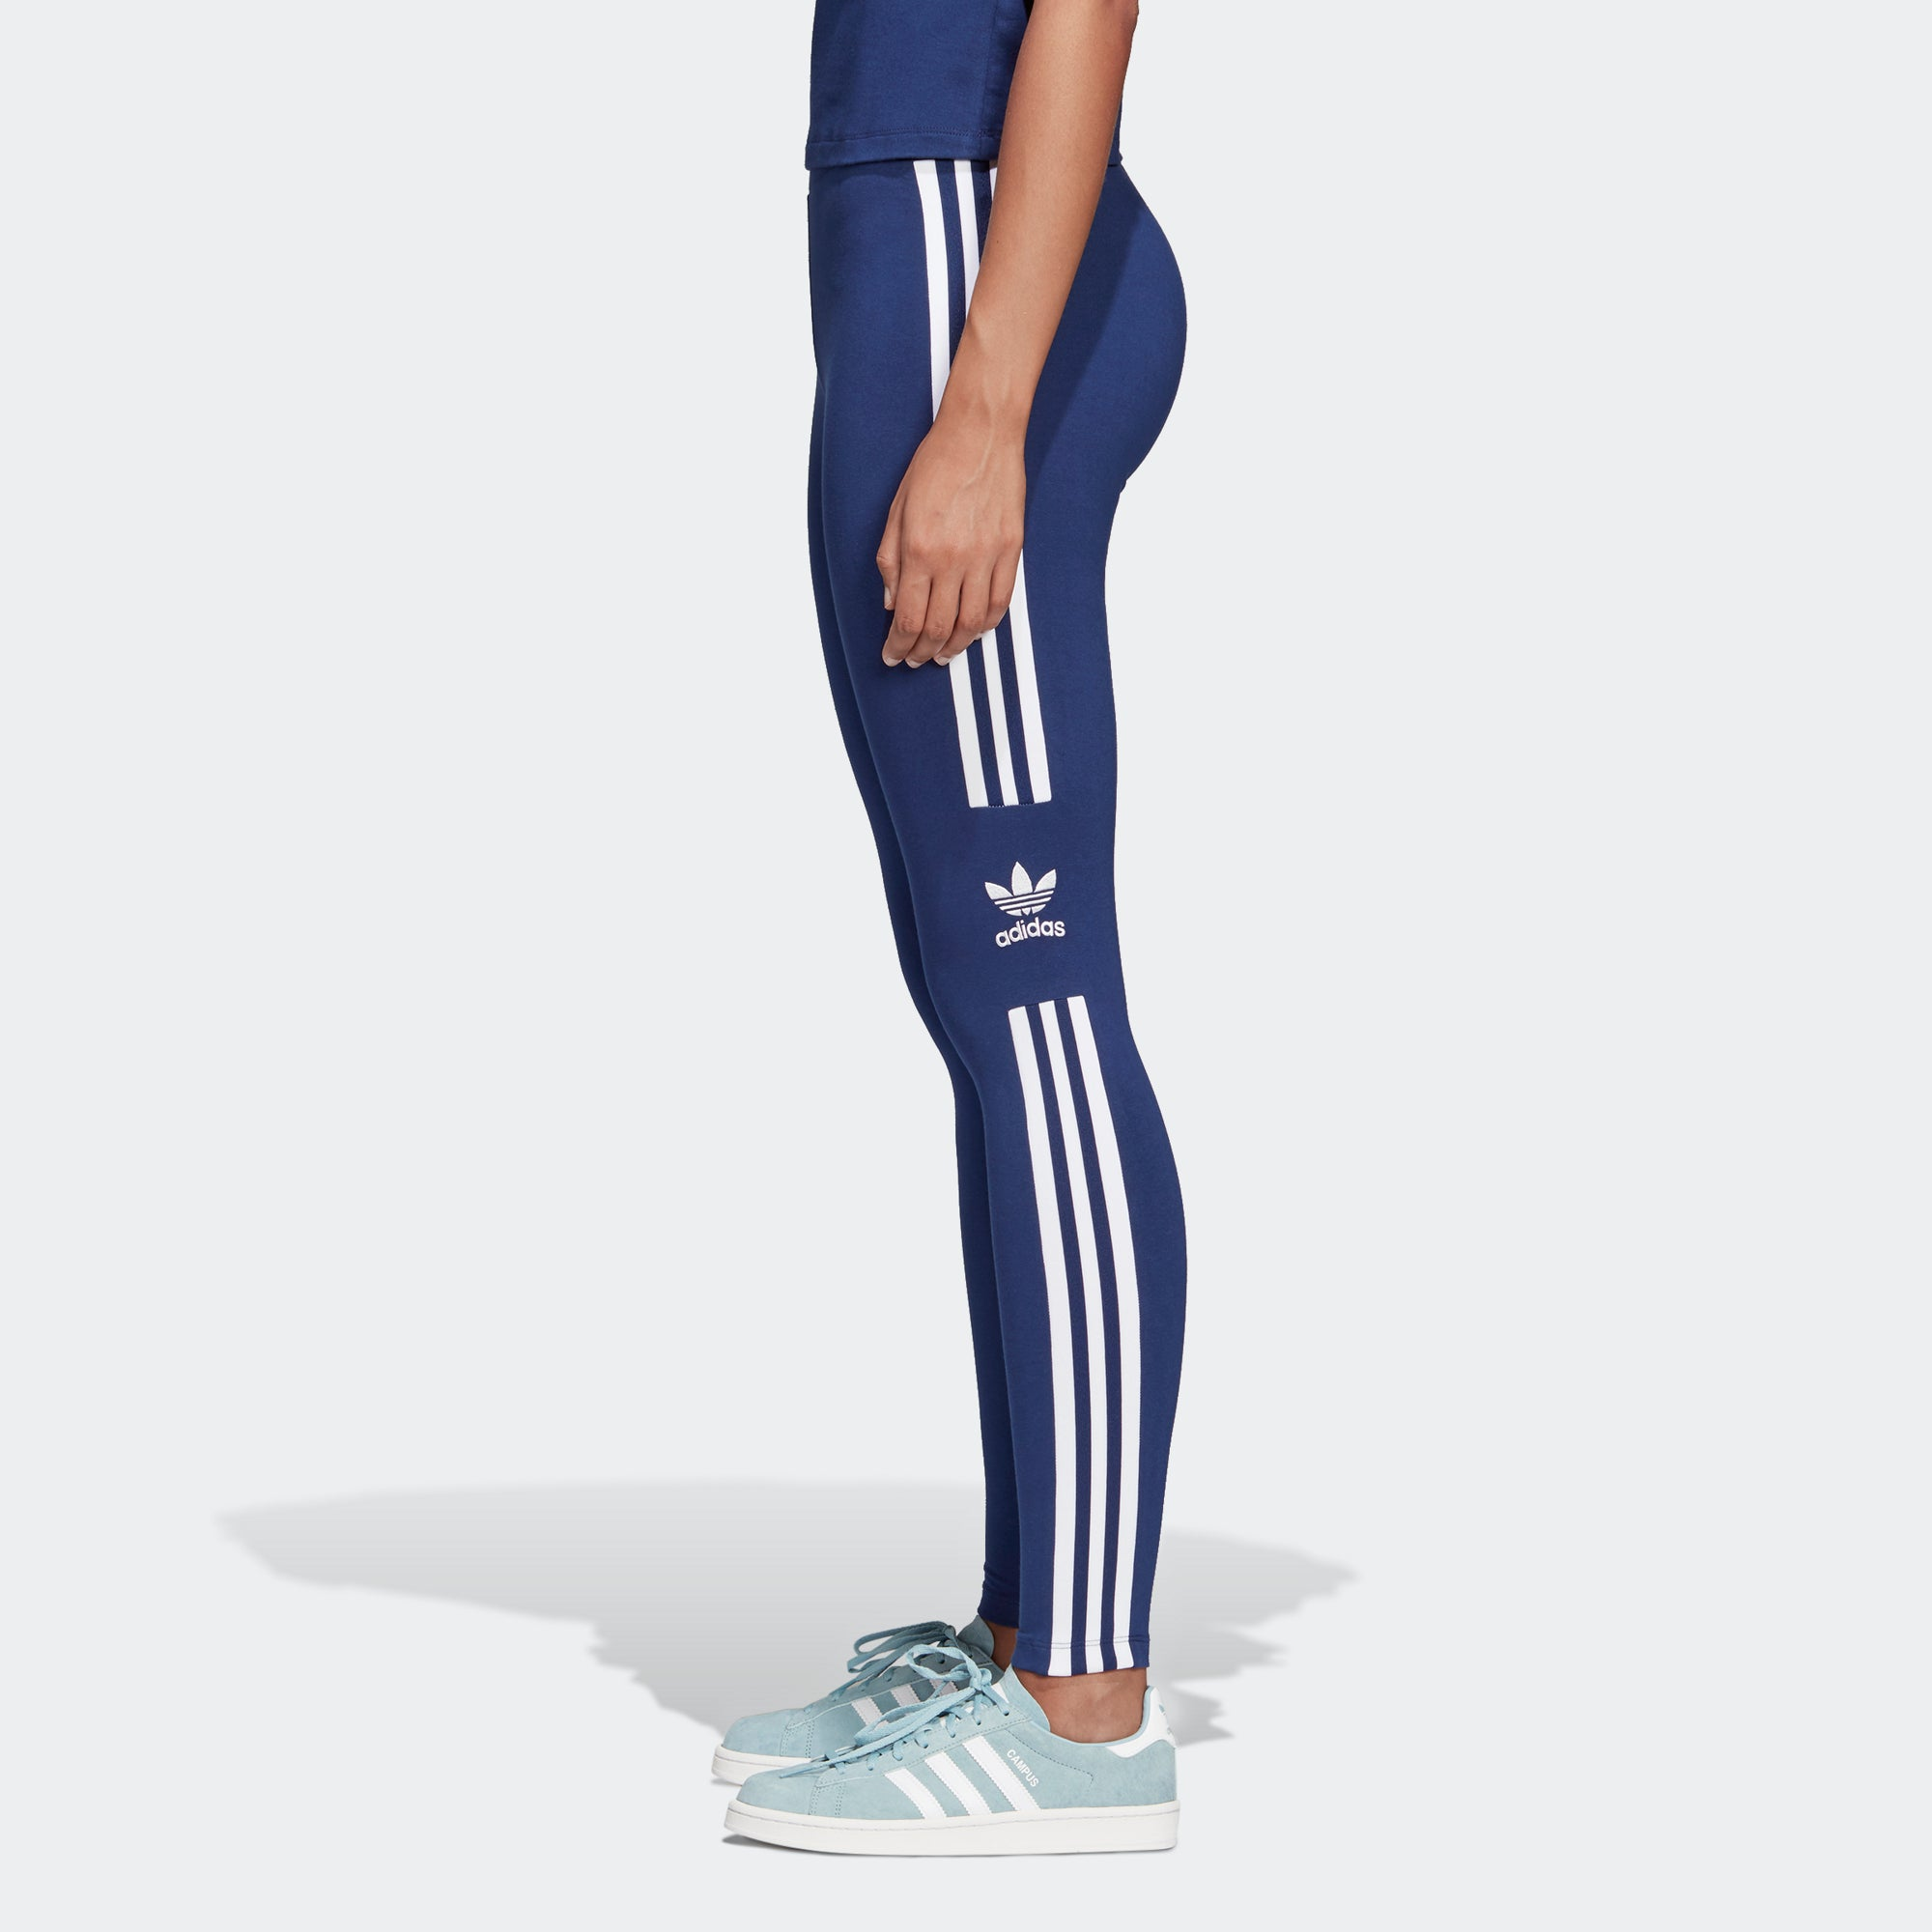 64e806bbe325f adidas Trefoil Leggings Dark Blue DV2634 | Chicago City Sports